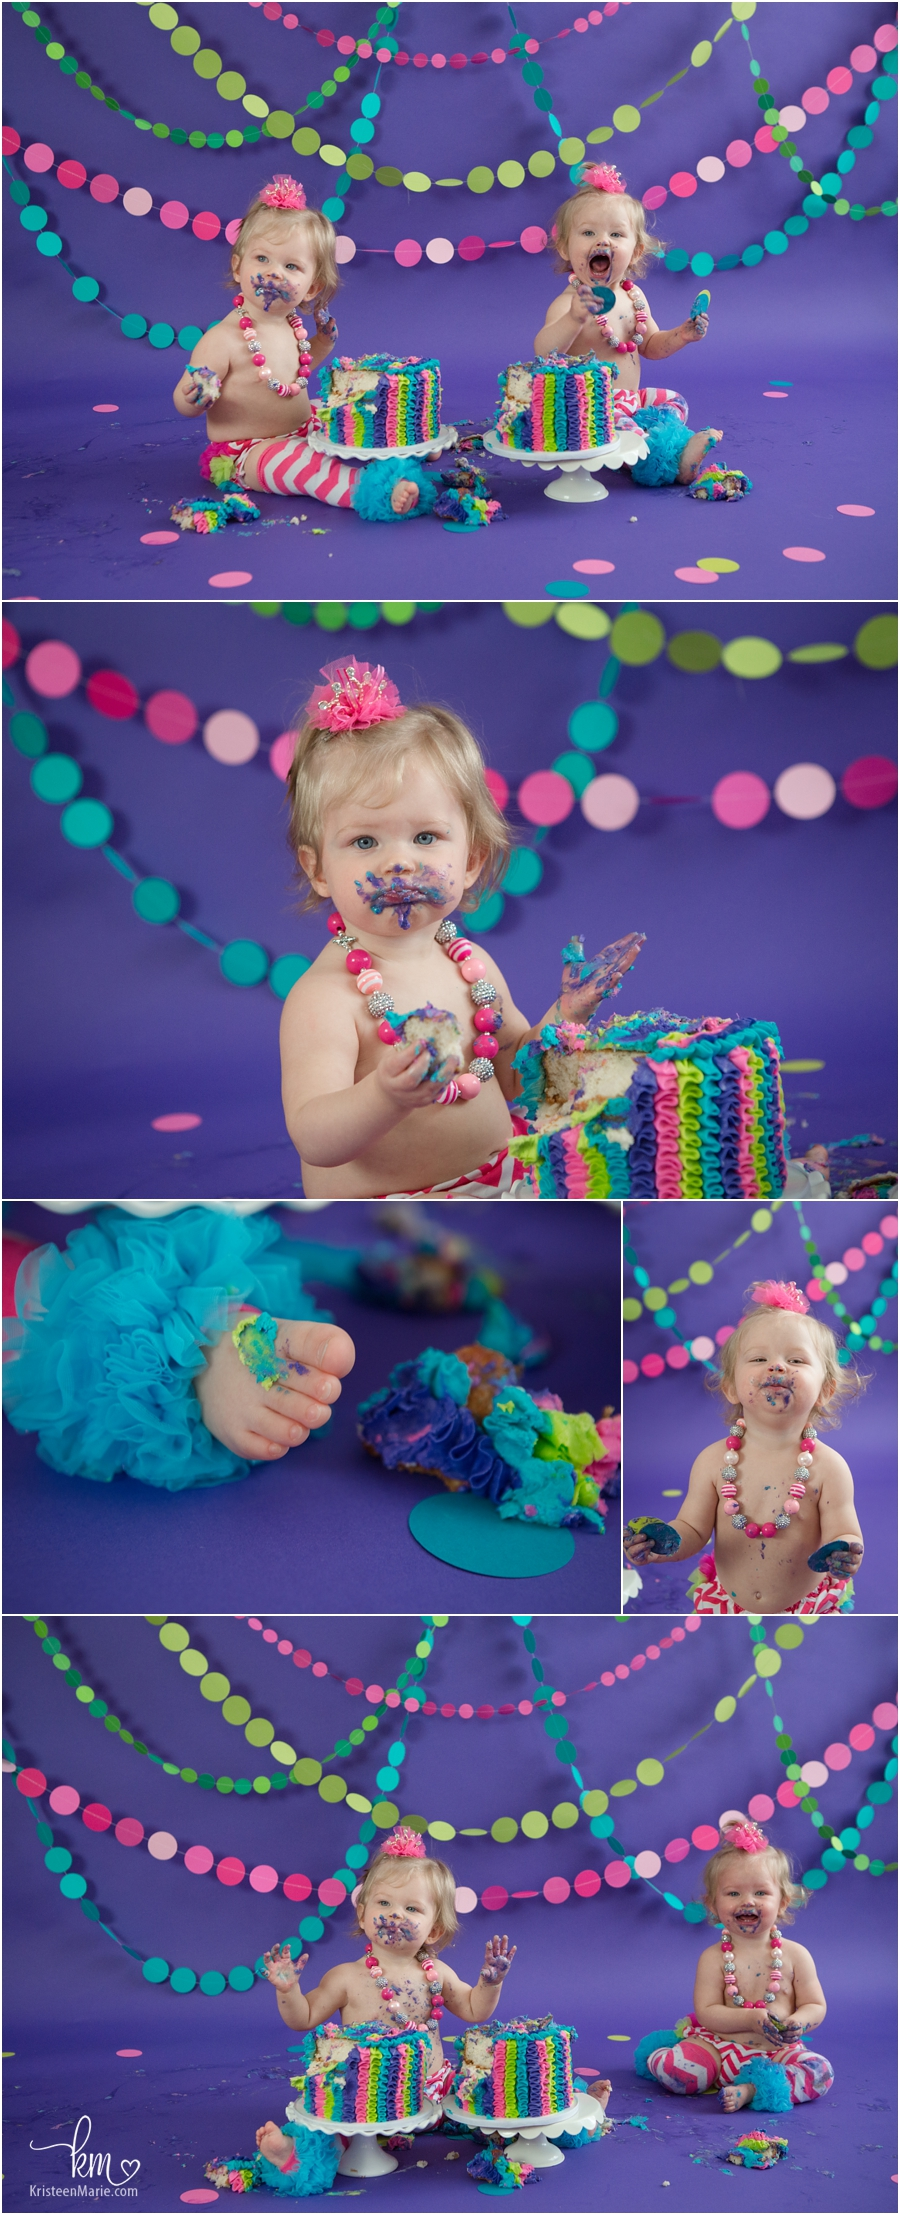 pink, green, purple, and teal birthday party theme - 1st birthday cake smash sesion